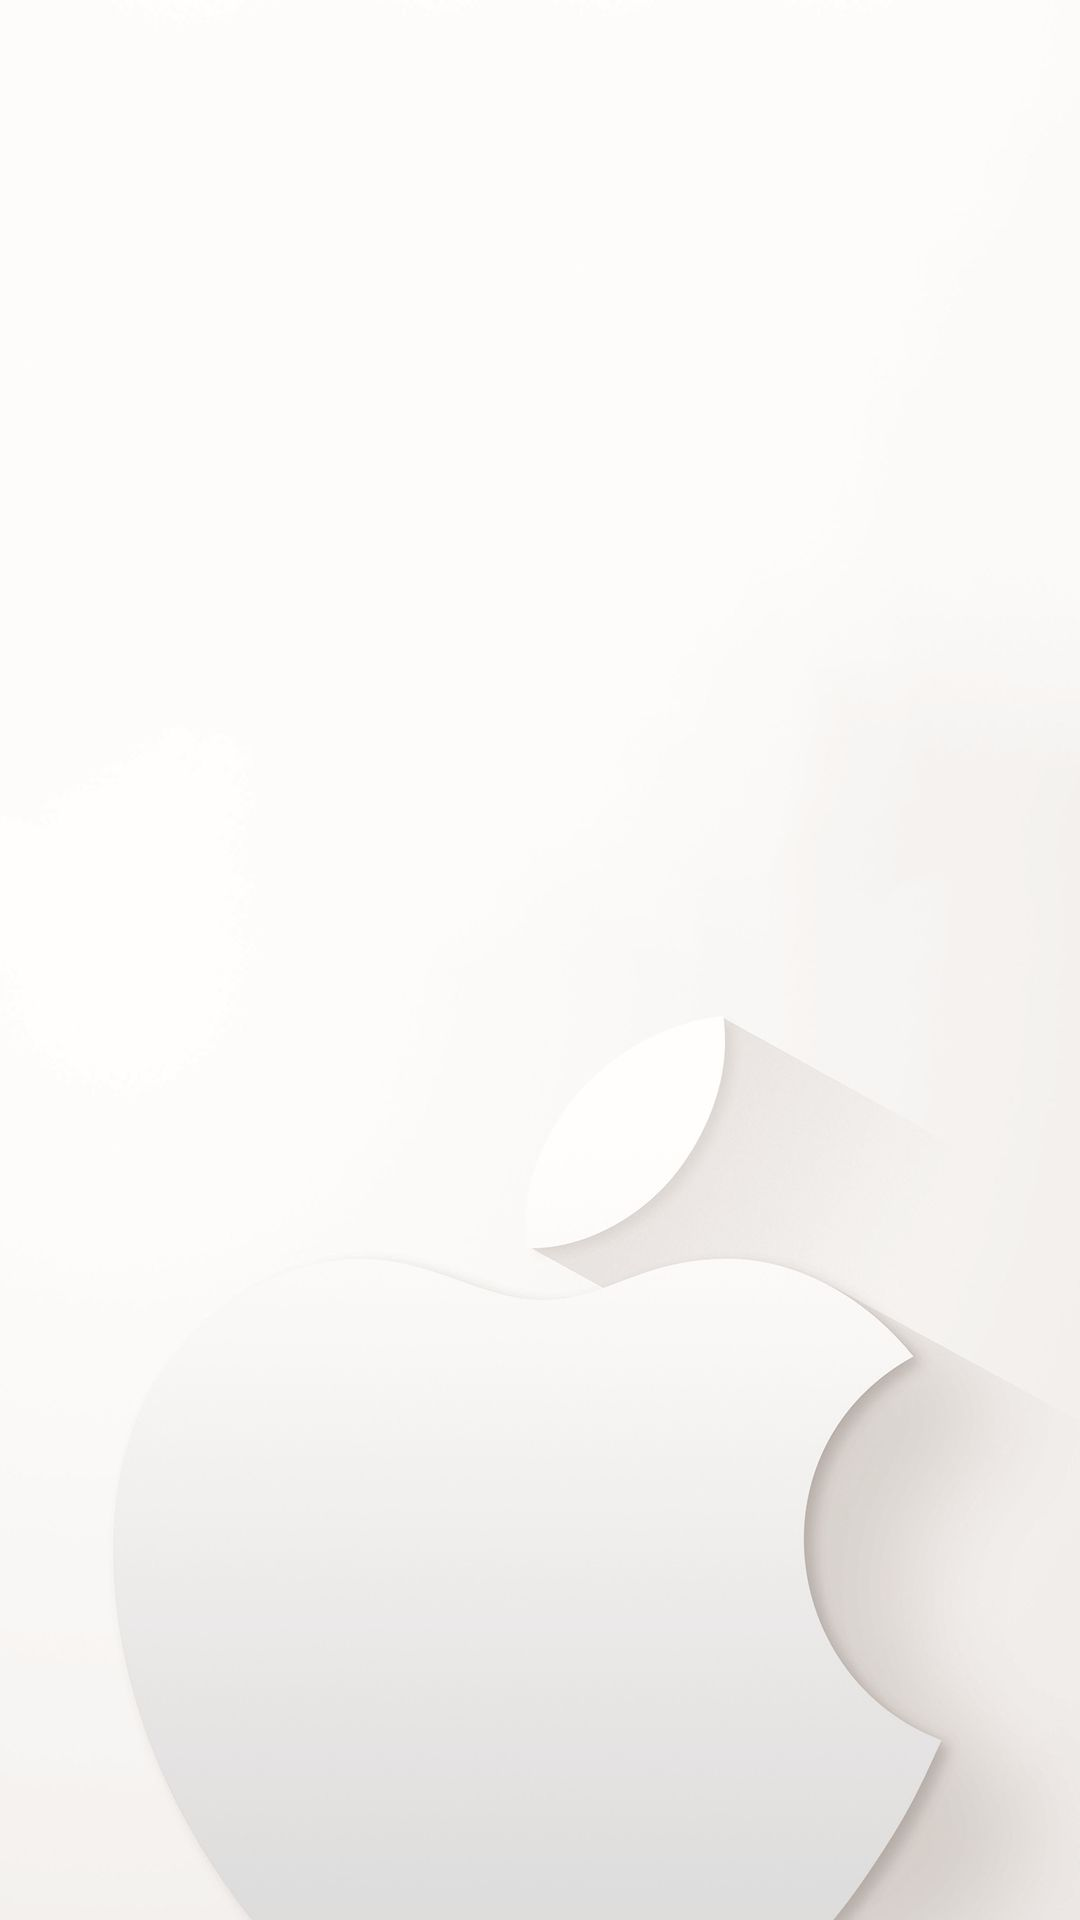 26 White Iphone Wallpapers Wallpaperboat